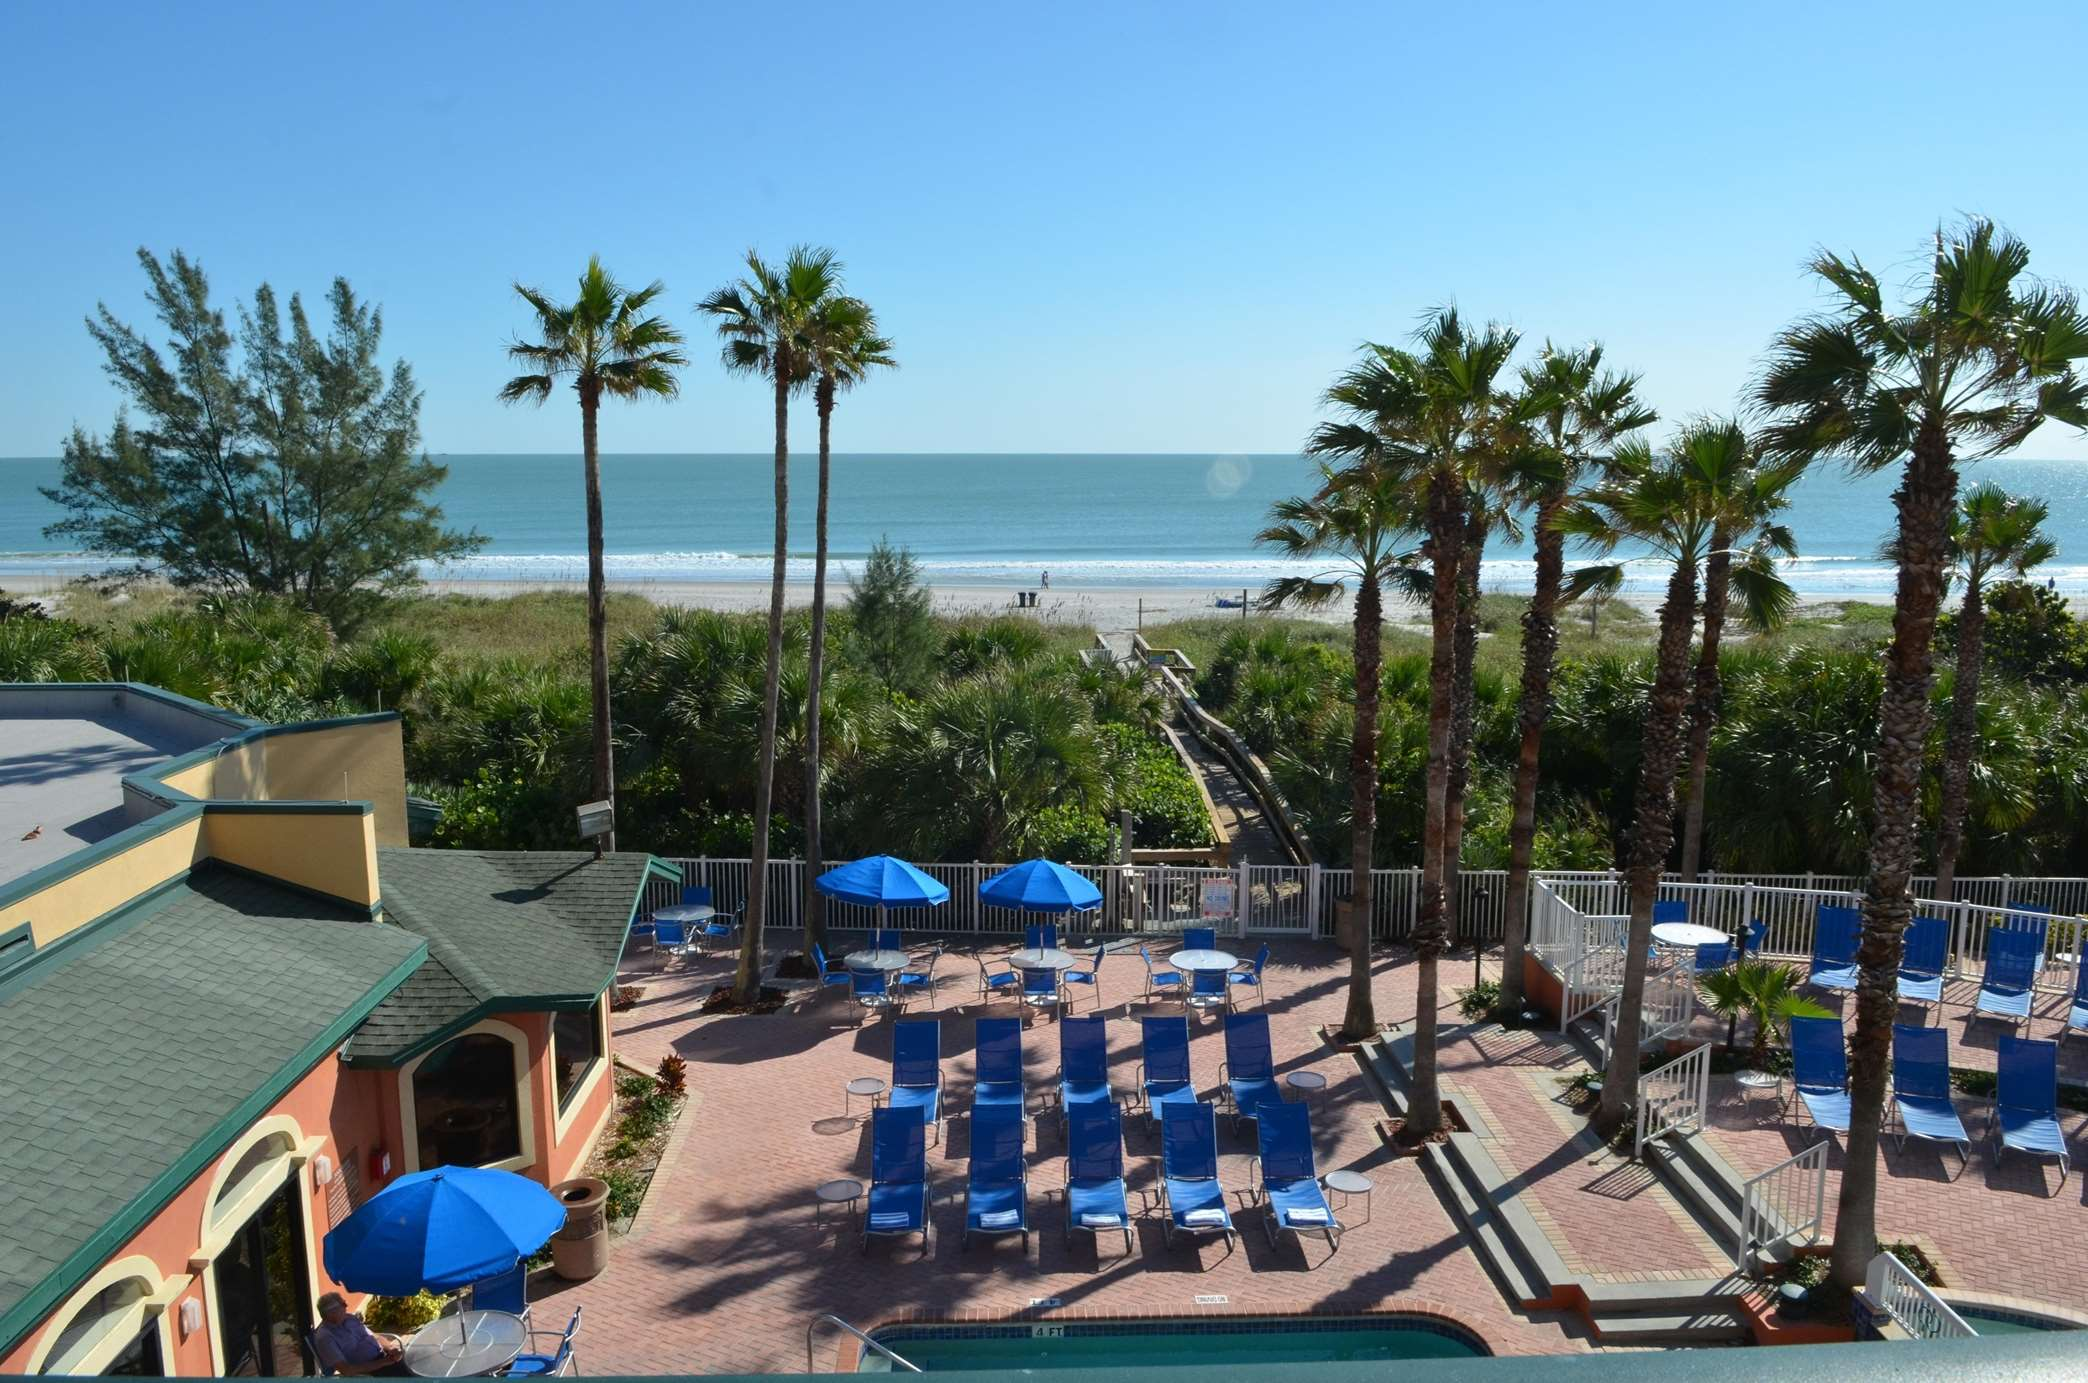 DoubleTree by Hilton Hotel Cocoa Beach Oceanfront image 9